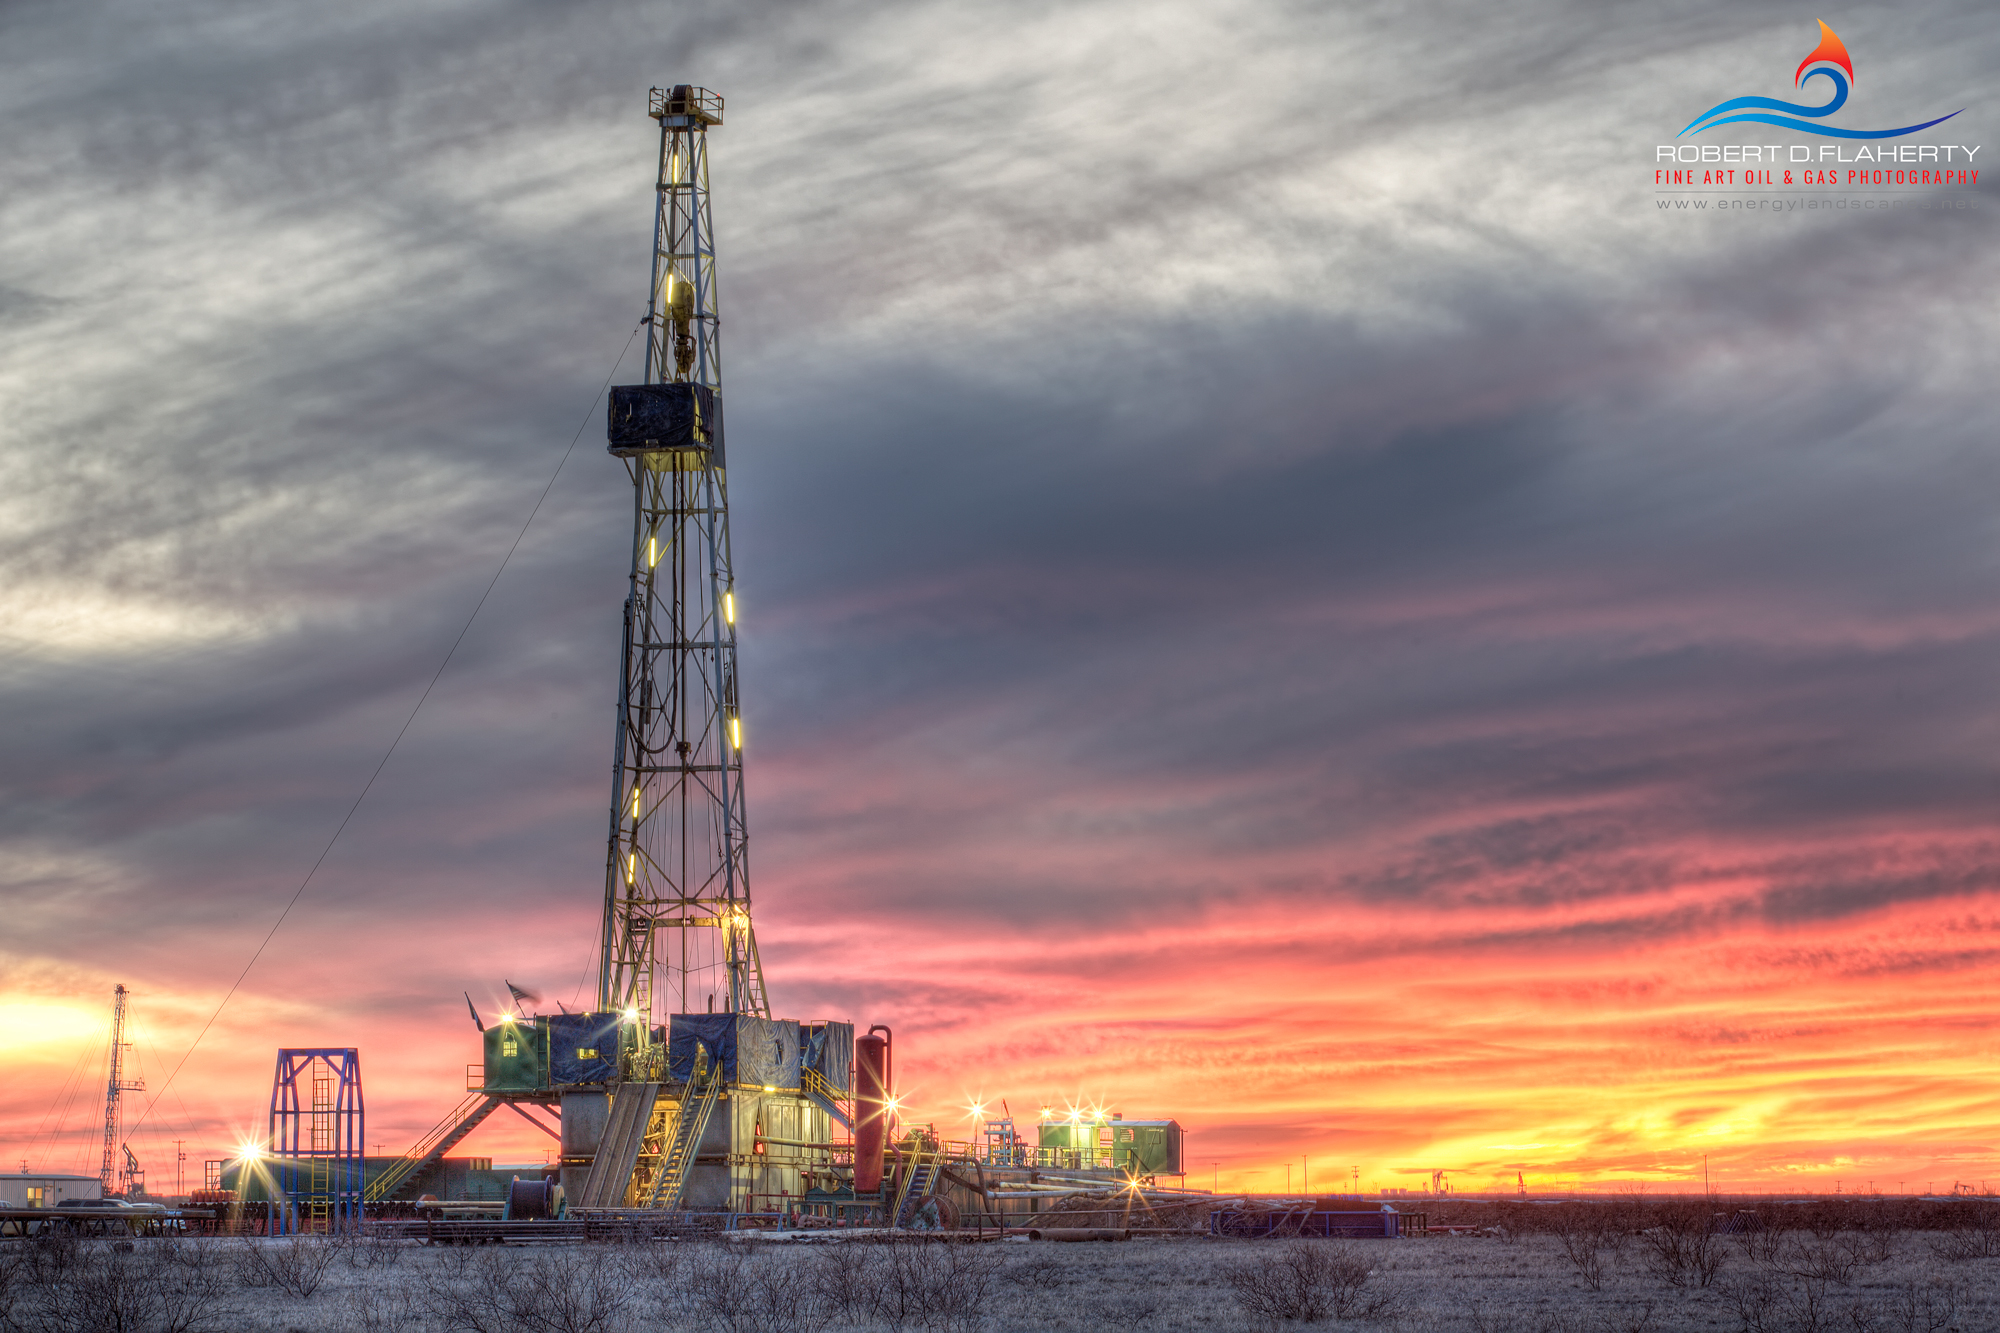 Drilling Rig, Cold, Sunset, Midland, Texas, Midland County, winter storm, Oil and gas photography, fine art,  Robert D.